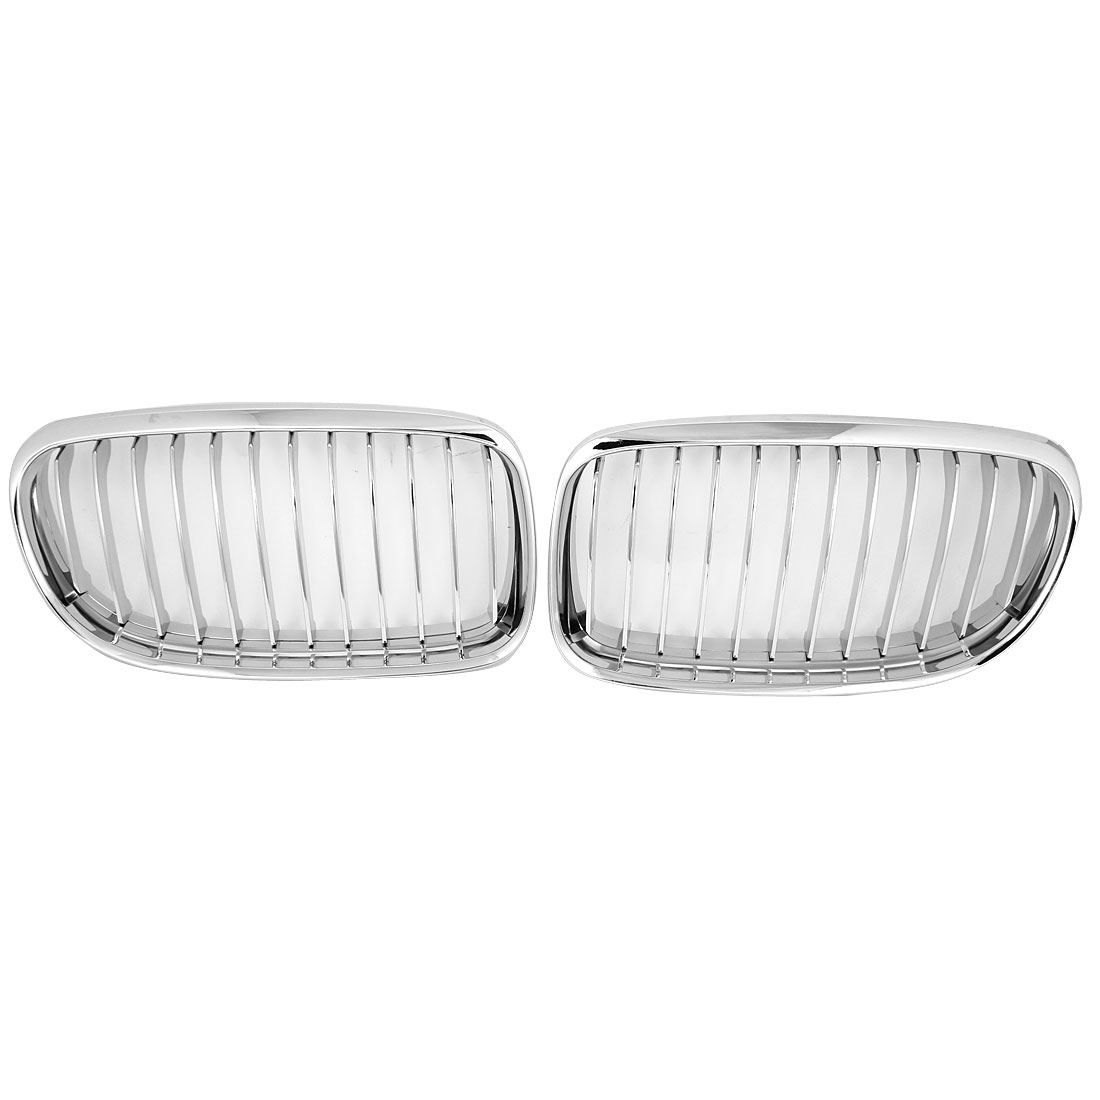 Pair Silver Tone Glossy Kidney Chrome Plated Front Car Grille Grill for BMW 525i/528i/530i/540i/M5